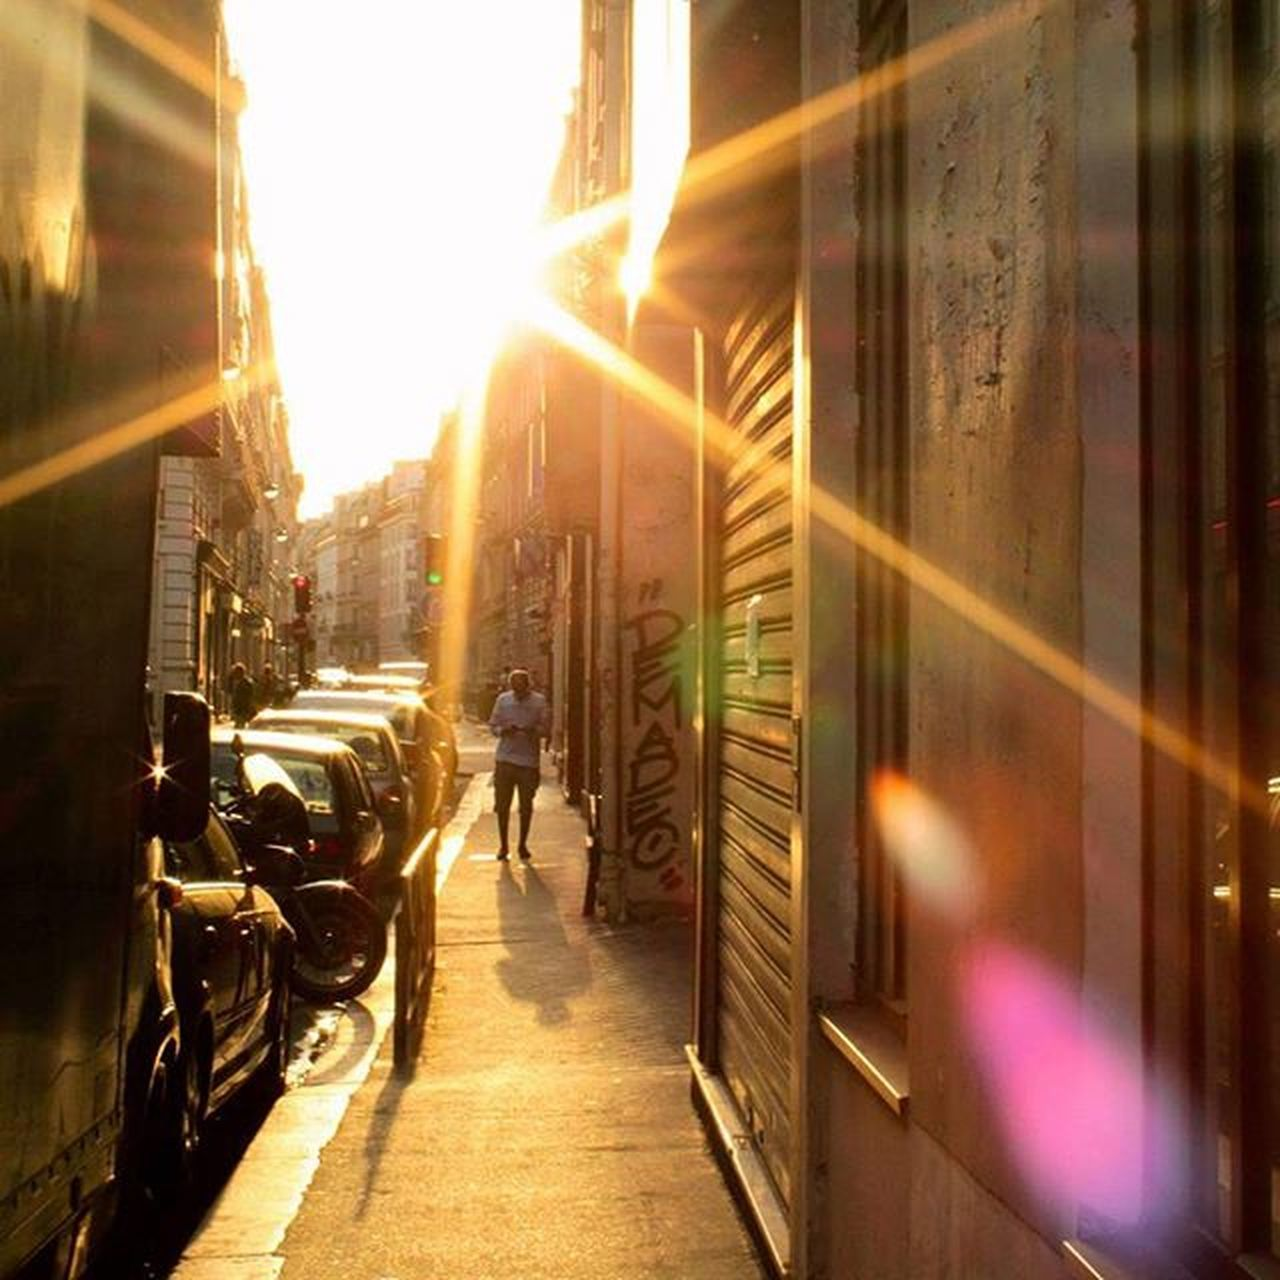 Luz du paradis Paris Photooftheday Contrejour Light contrast colors street photoshoot